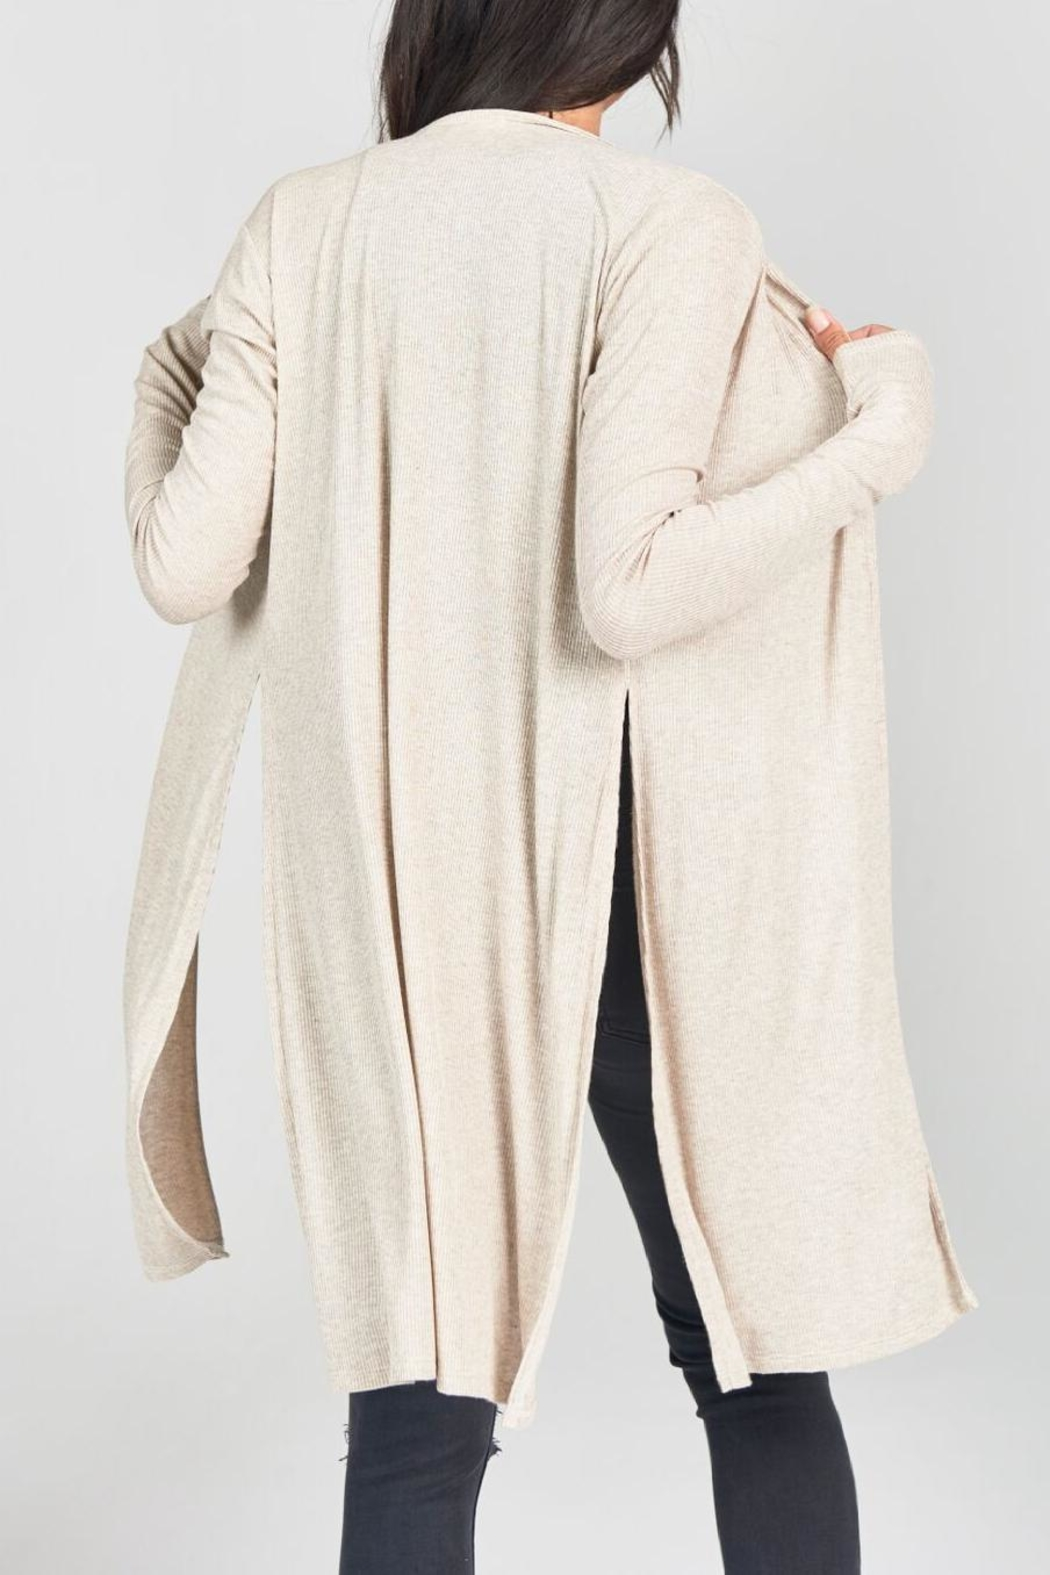 Joah Brown Long Line Open Cardigan - Side Cropped Image